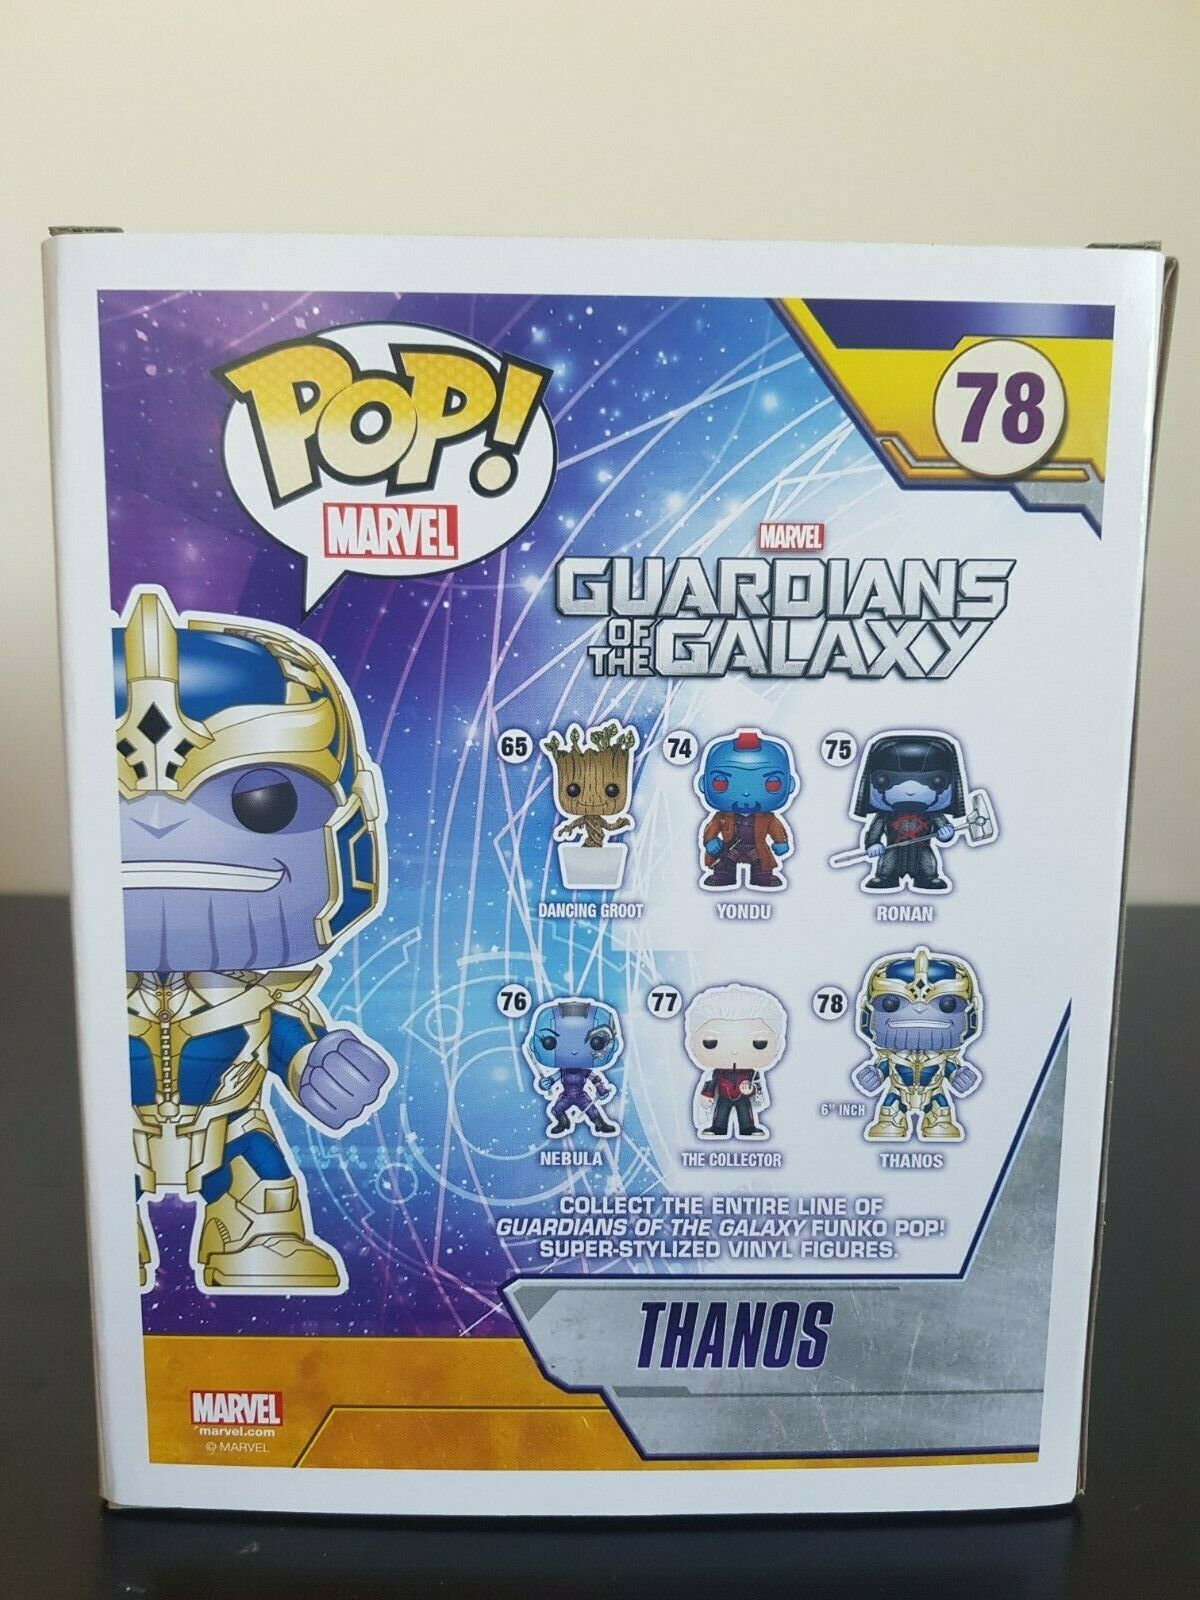 Marvel Funko Pop - - - Thanos - Guardians of the Galaxy - No. 78 643a54